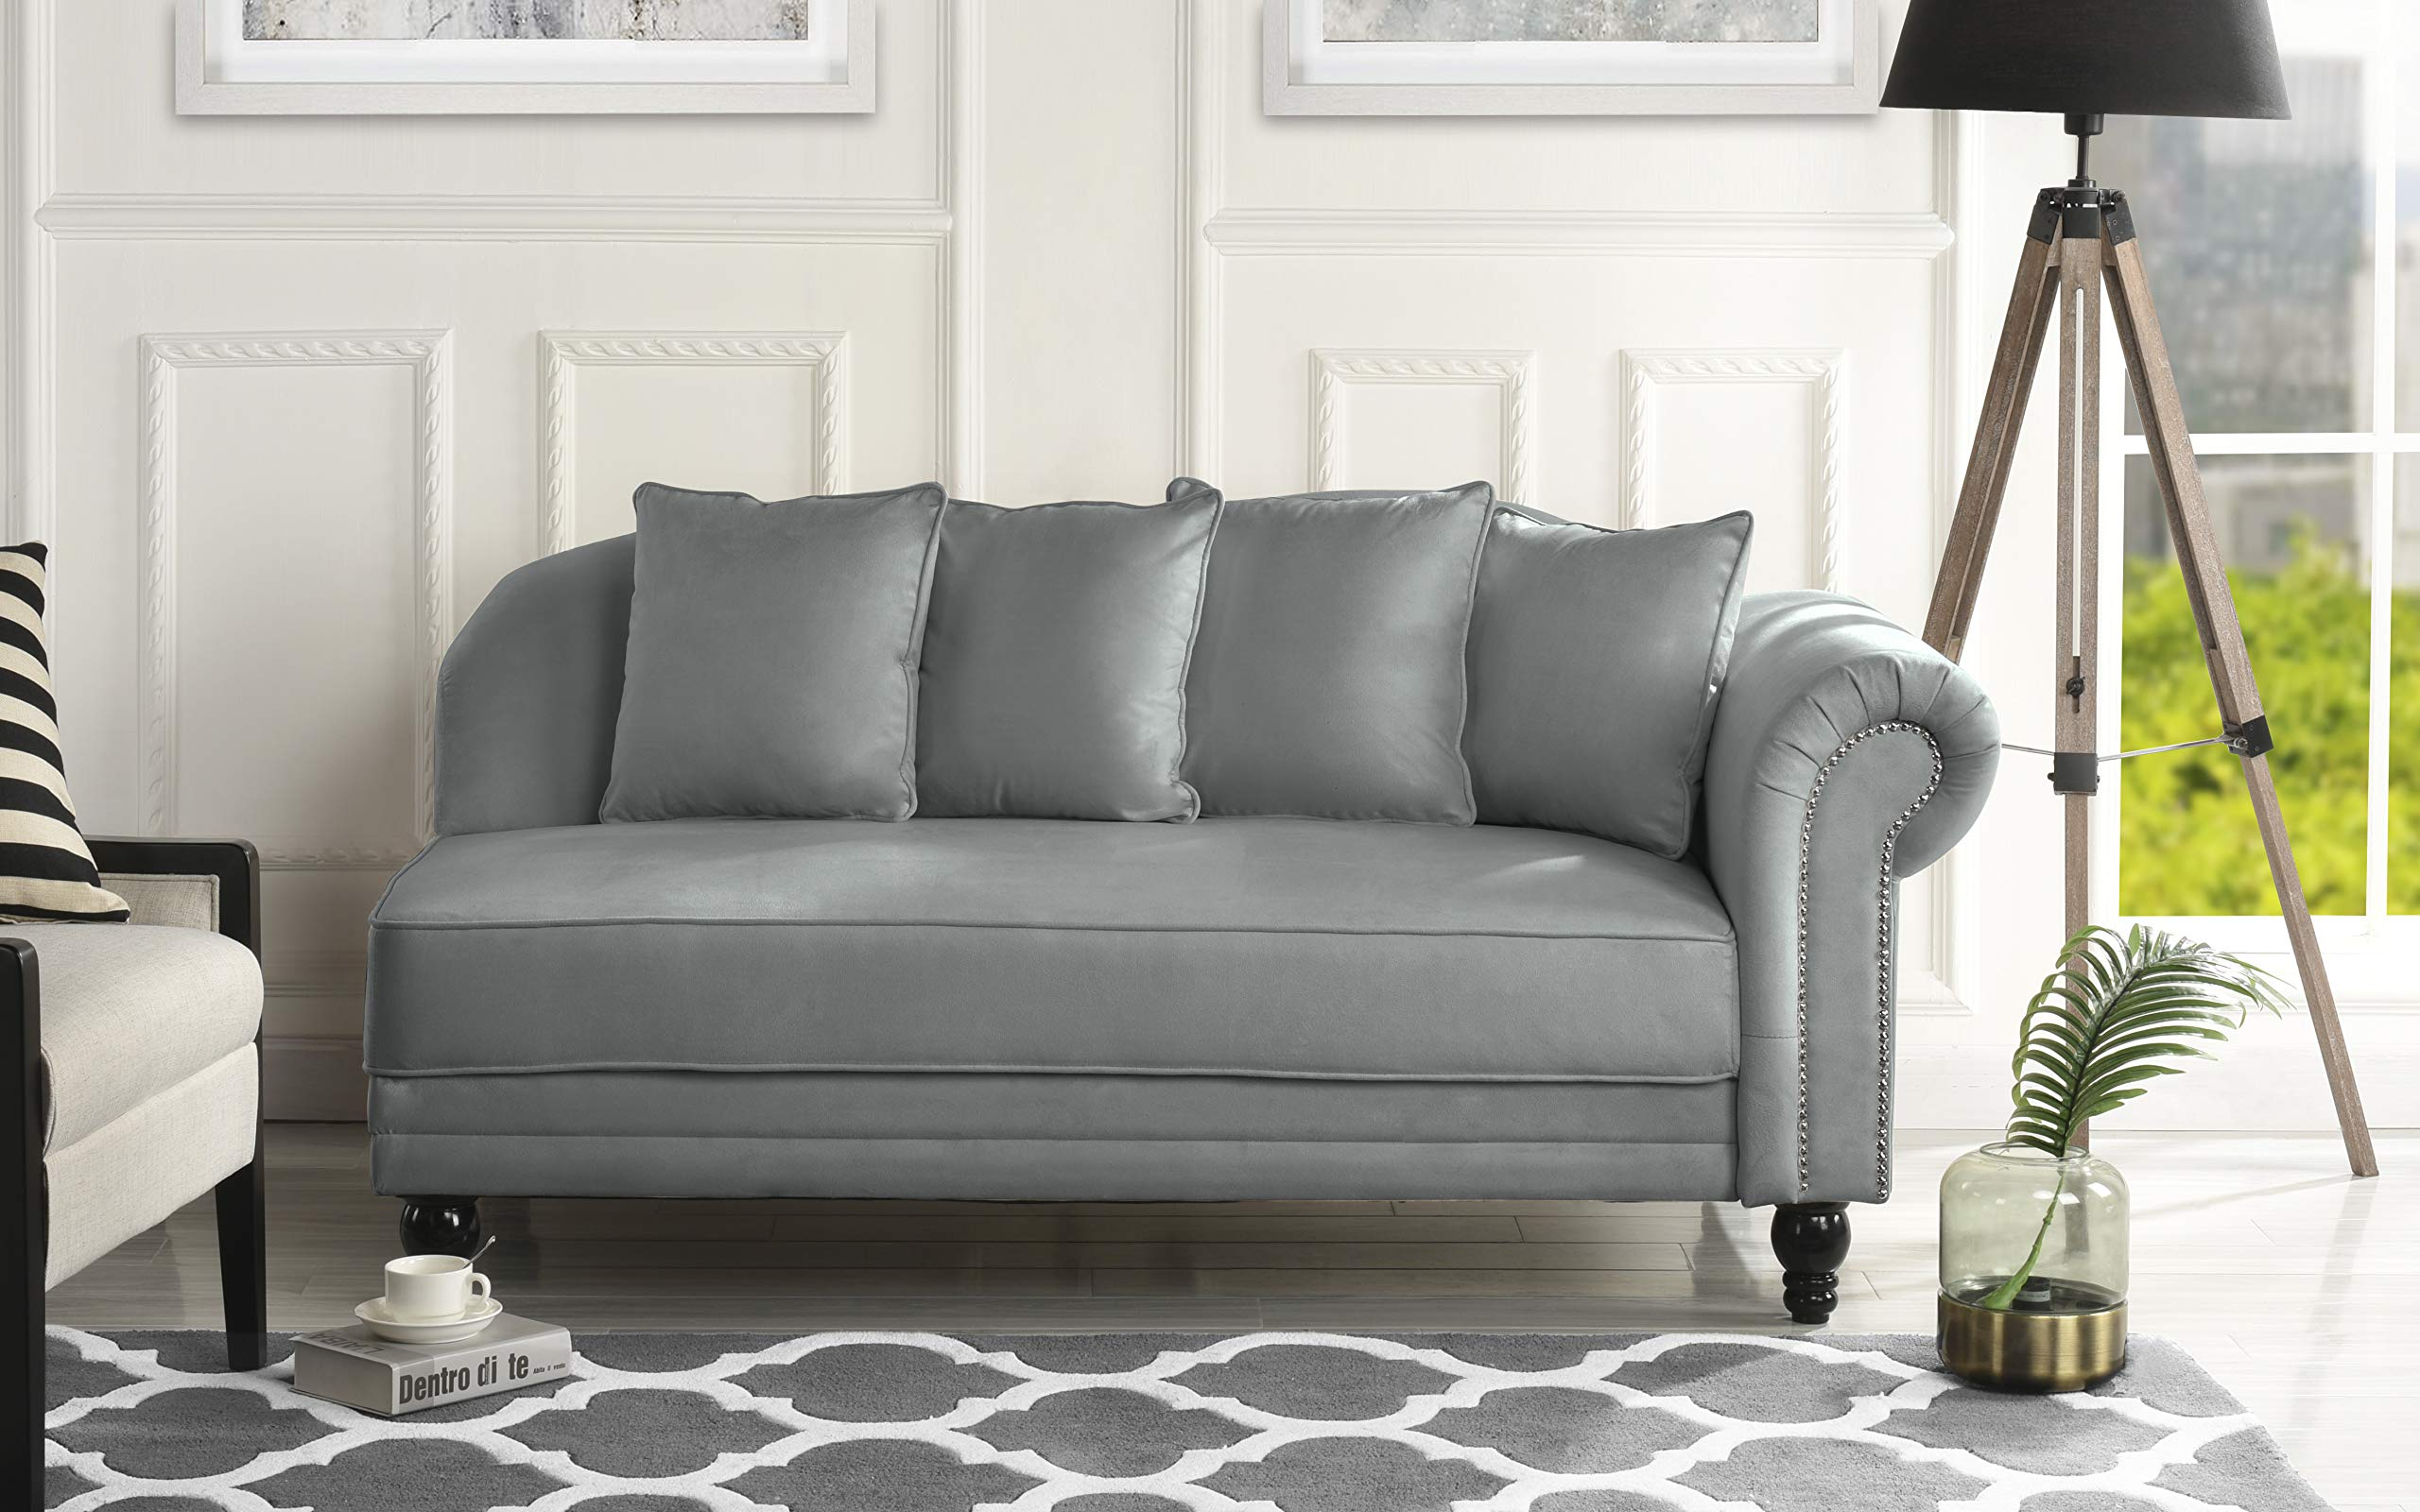 Sofamania Large Classic Velvet Fabric Living Room Chaise Lounge with Nailhead Trim (Dark Grey) by Sofamania